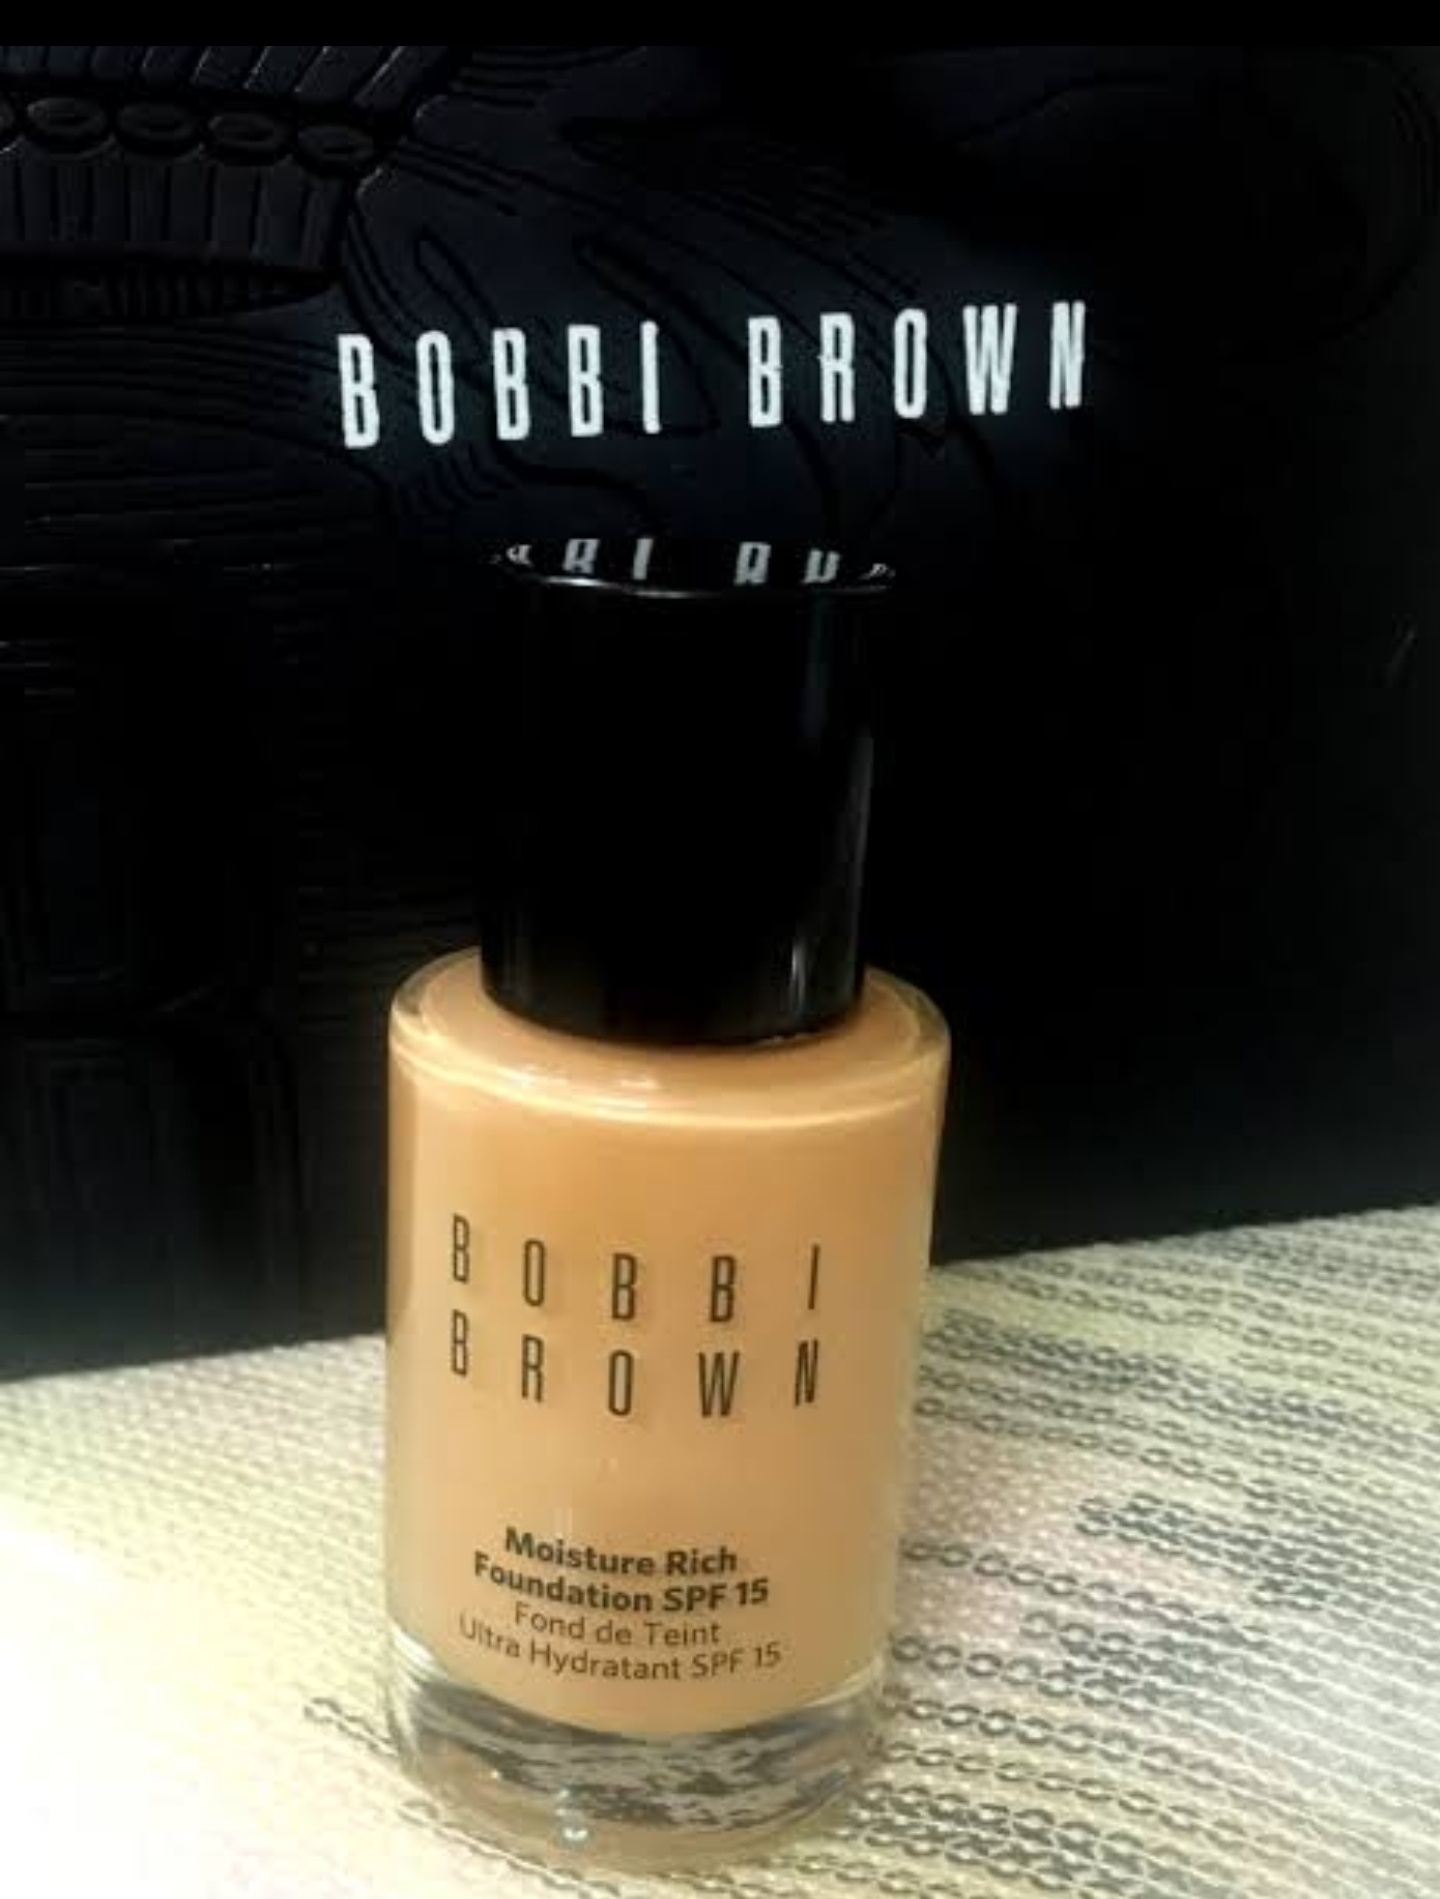 Bobbi Brown Moisture Rich Foundation-Long lasting and good coverage foundation-By garima.sharma28